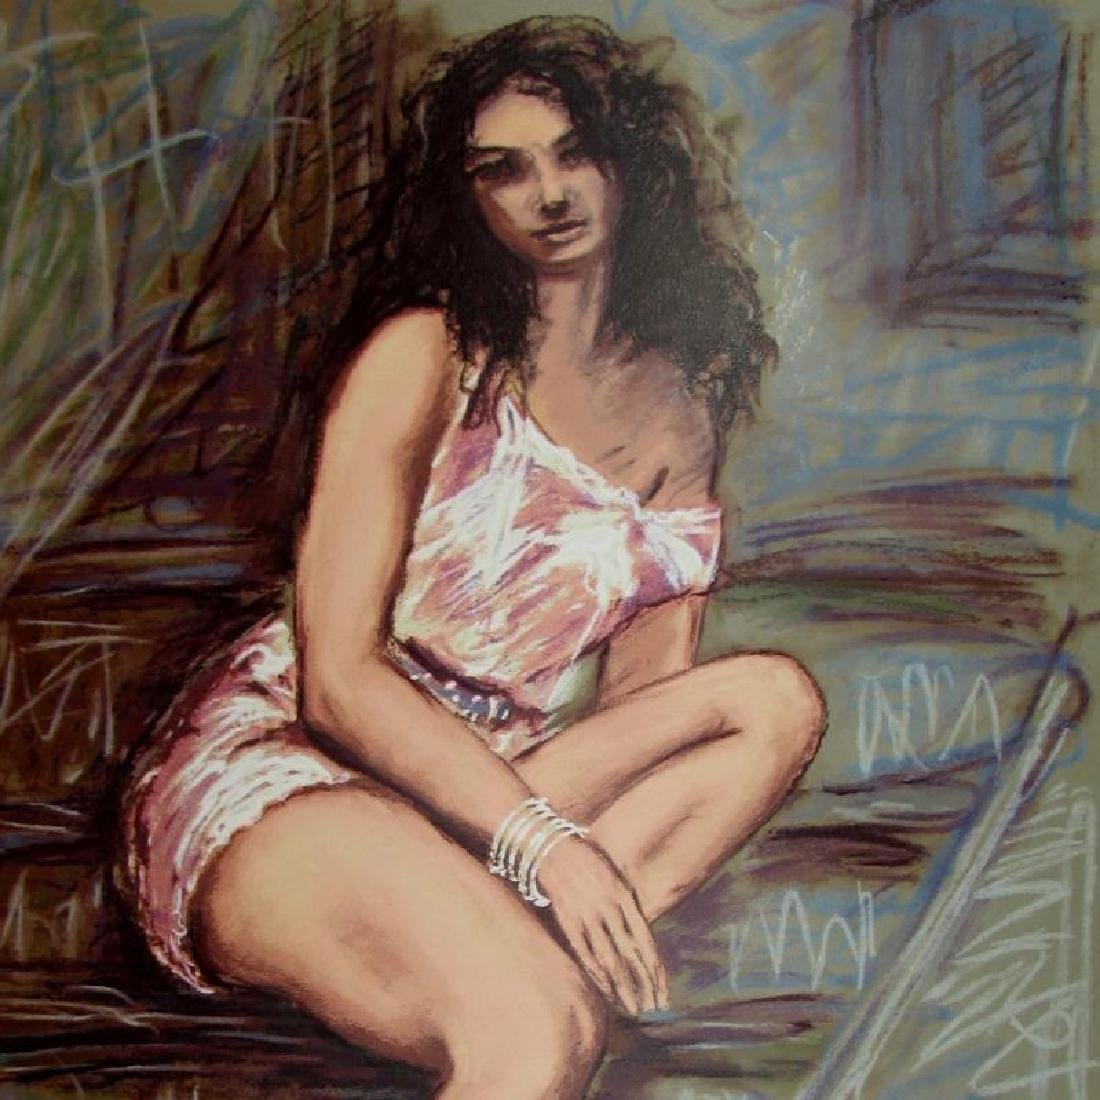 Sensual Woman Impressionism Limited Ed Signed Art Sale - 4